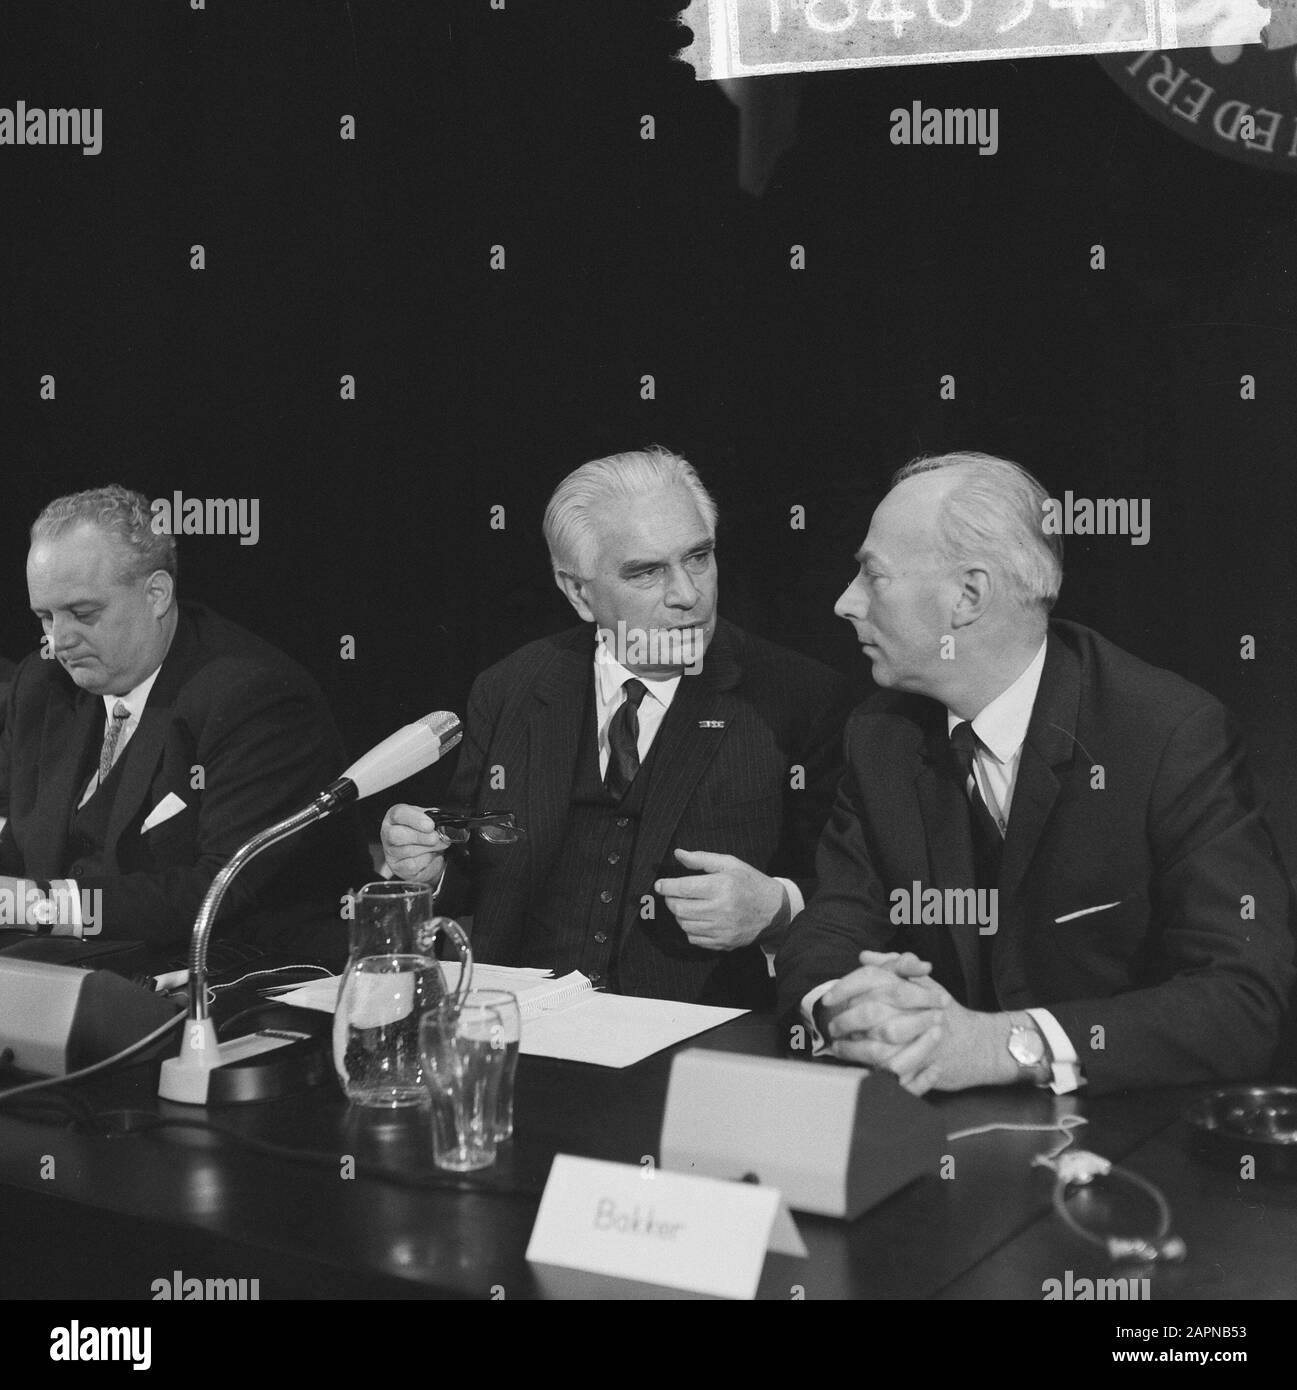 Extraordinary general meeting of the Dutch-German Chamber of Commerce on the occasion of the sixtieth anniversary  German Minister of Economy and Technology Kurt Schmückler (l.) and Professor Gelissen Date: 18 November 1965 Keywords: international relations, anniversaries, meetings Personal name: Gelissen, Henri Caspar Joseph Hubert, Schmückler, Kurt Institutional name: Chamber of Commerce Stock Photo